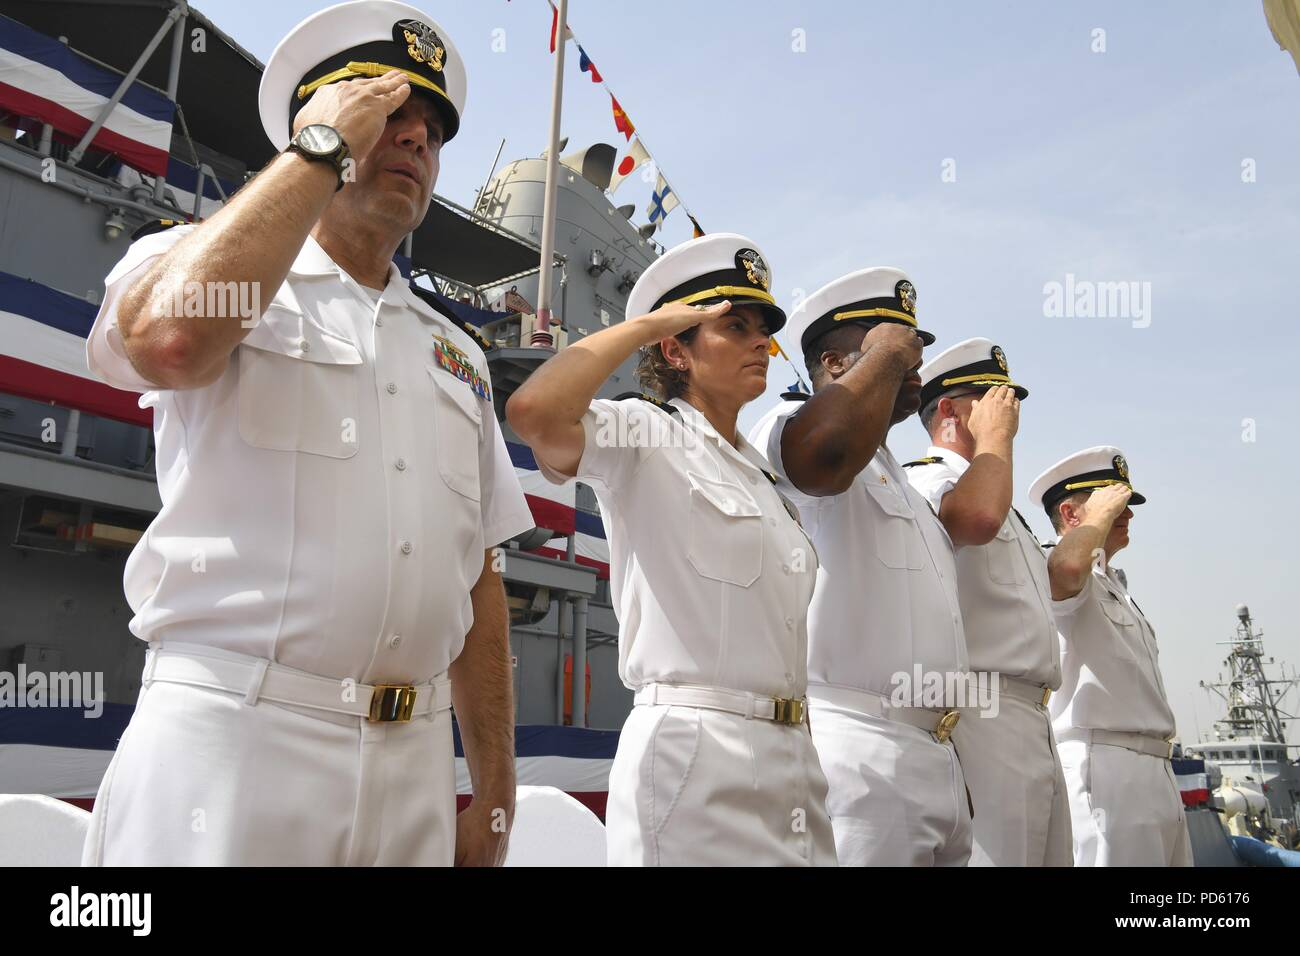 180711-N-TB177-1031 MANAMA, Bahrain (July 11, 2018) Officers salute during a change of command ceremony for the Avenger-class mine countermeasures ship USS Gladiator (MCM 11) on Naval Support Activity Bahrain, July 11, 2018. Gladiator is forward deployed to the U.S. 5th Fleet area of operations in support of naval operations to ensure maritime stability and security in the Central region, connecting the Mediterranean and the Pacific through the western Indian Ocean and three strategic choke points. (U.S. Navy photo by Mass Communication Specialist 2nd Class Kevin J. Steinberg/Released). () Stock Photo